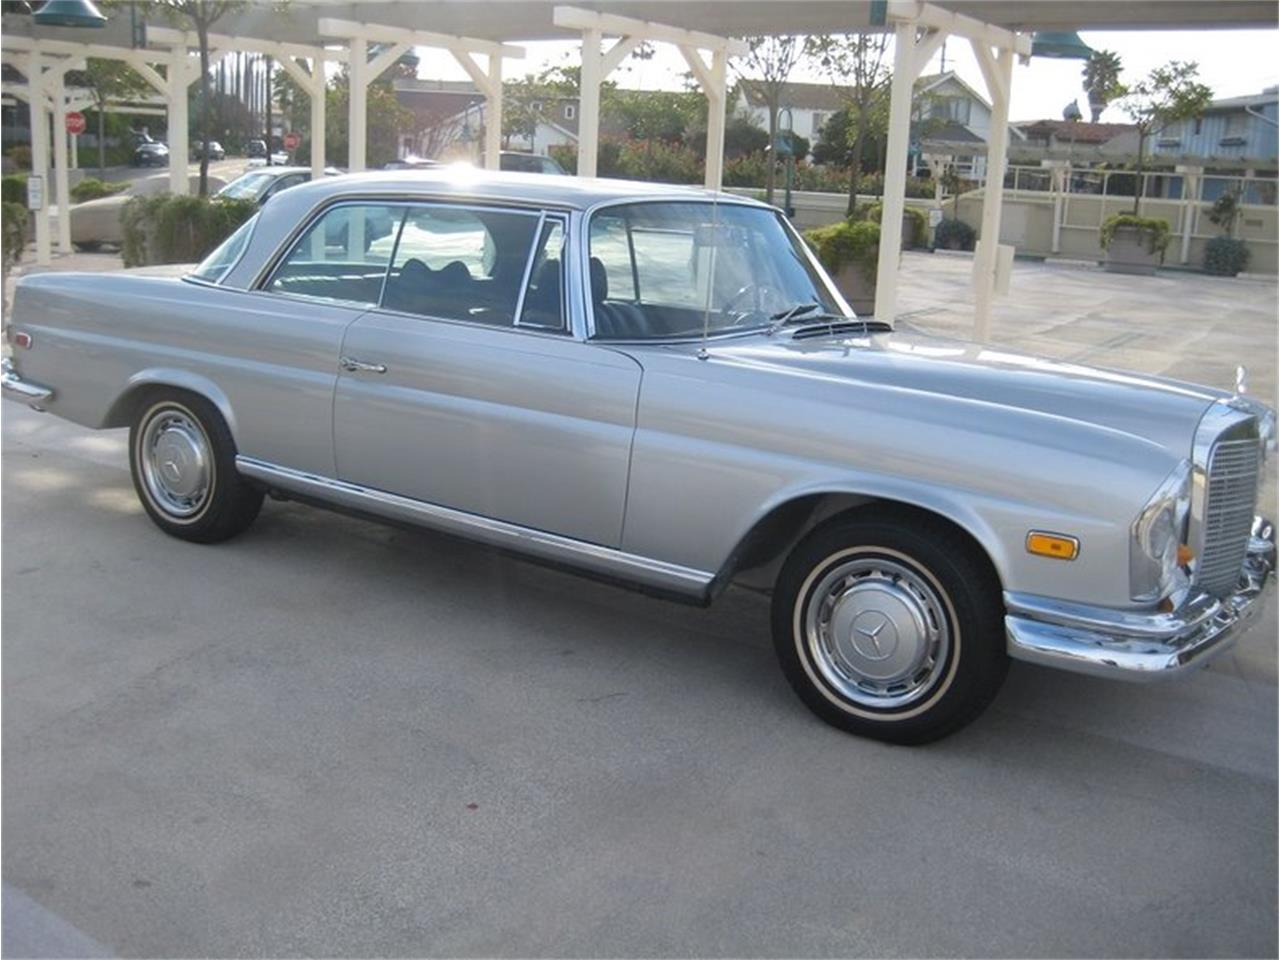 Large Picture of '69 Mercedes-Benz 280SE located in Laguna Beach California Offered by Laguna Classic Cars - MGKL